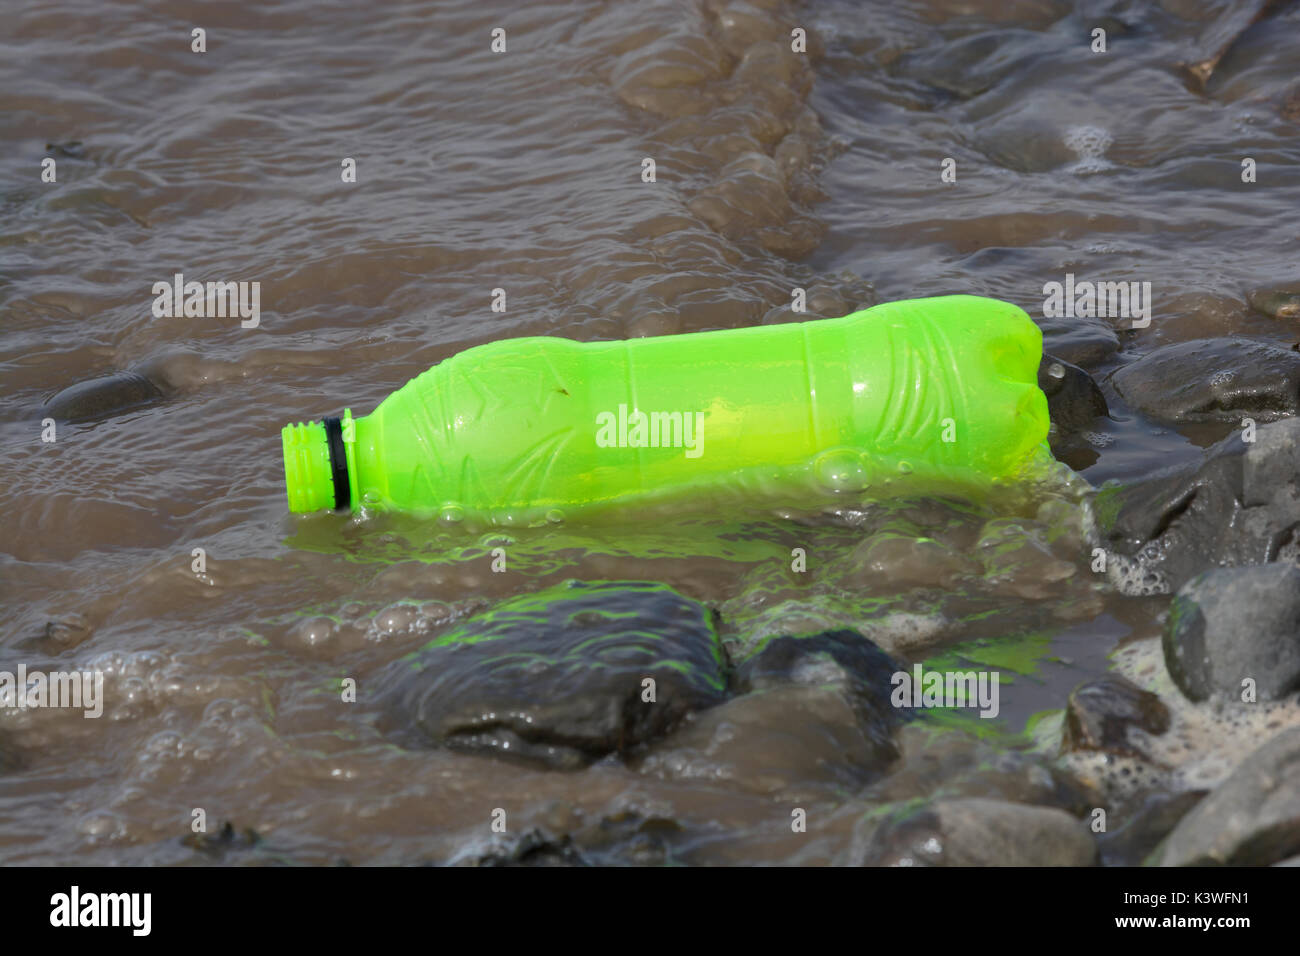 Plastic bottle washed up on beach in Lancashire - Stock Image